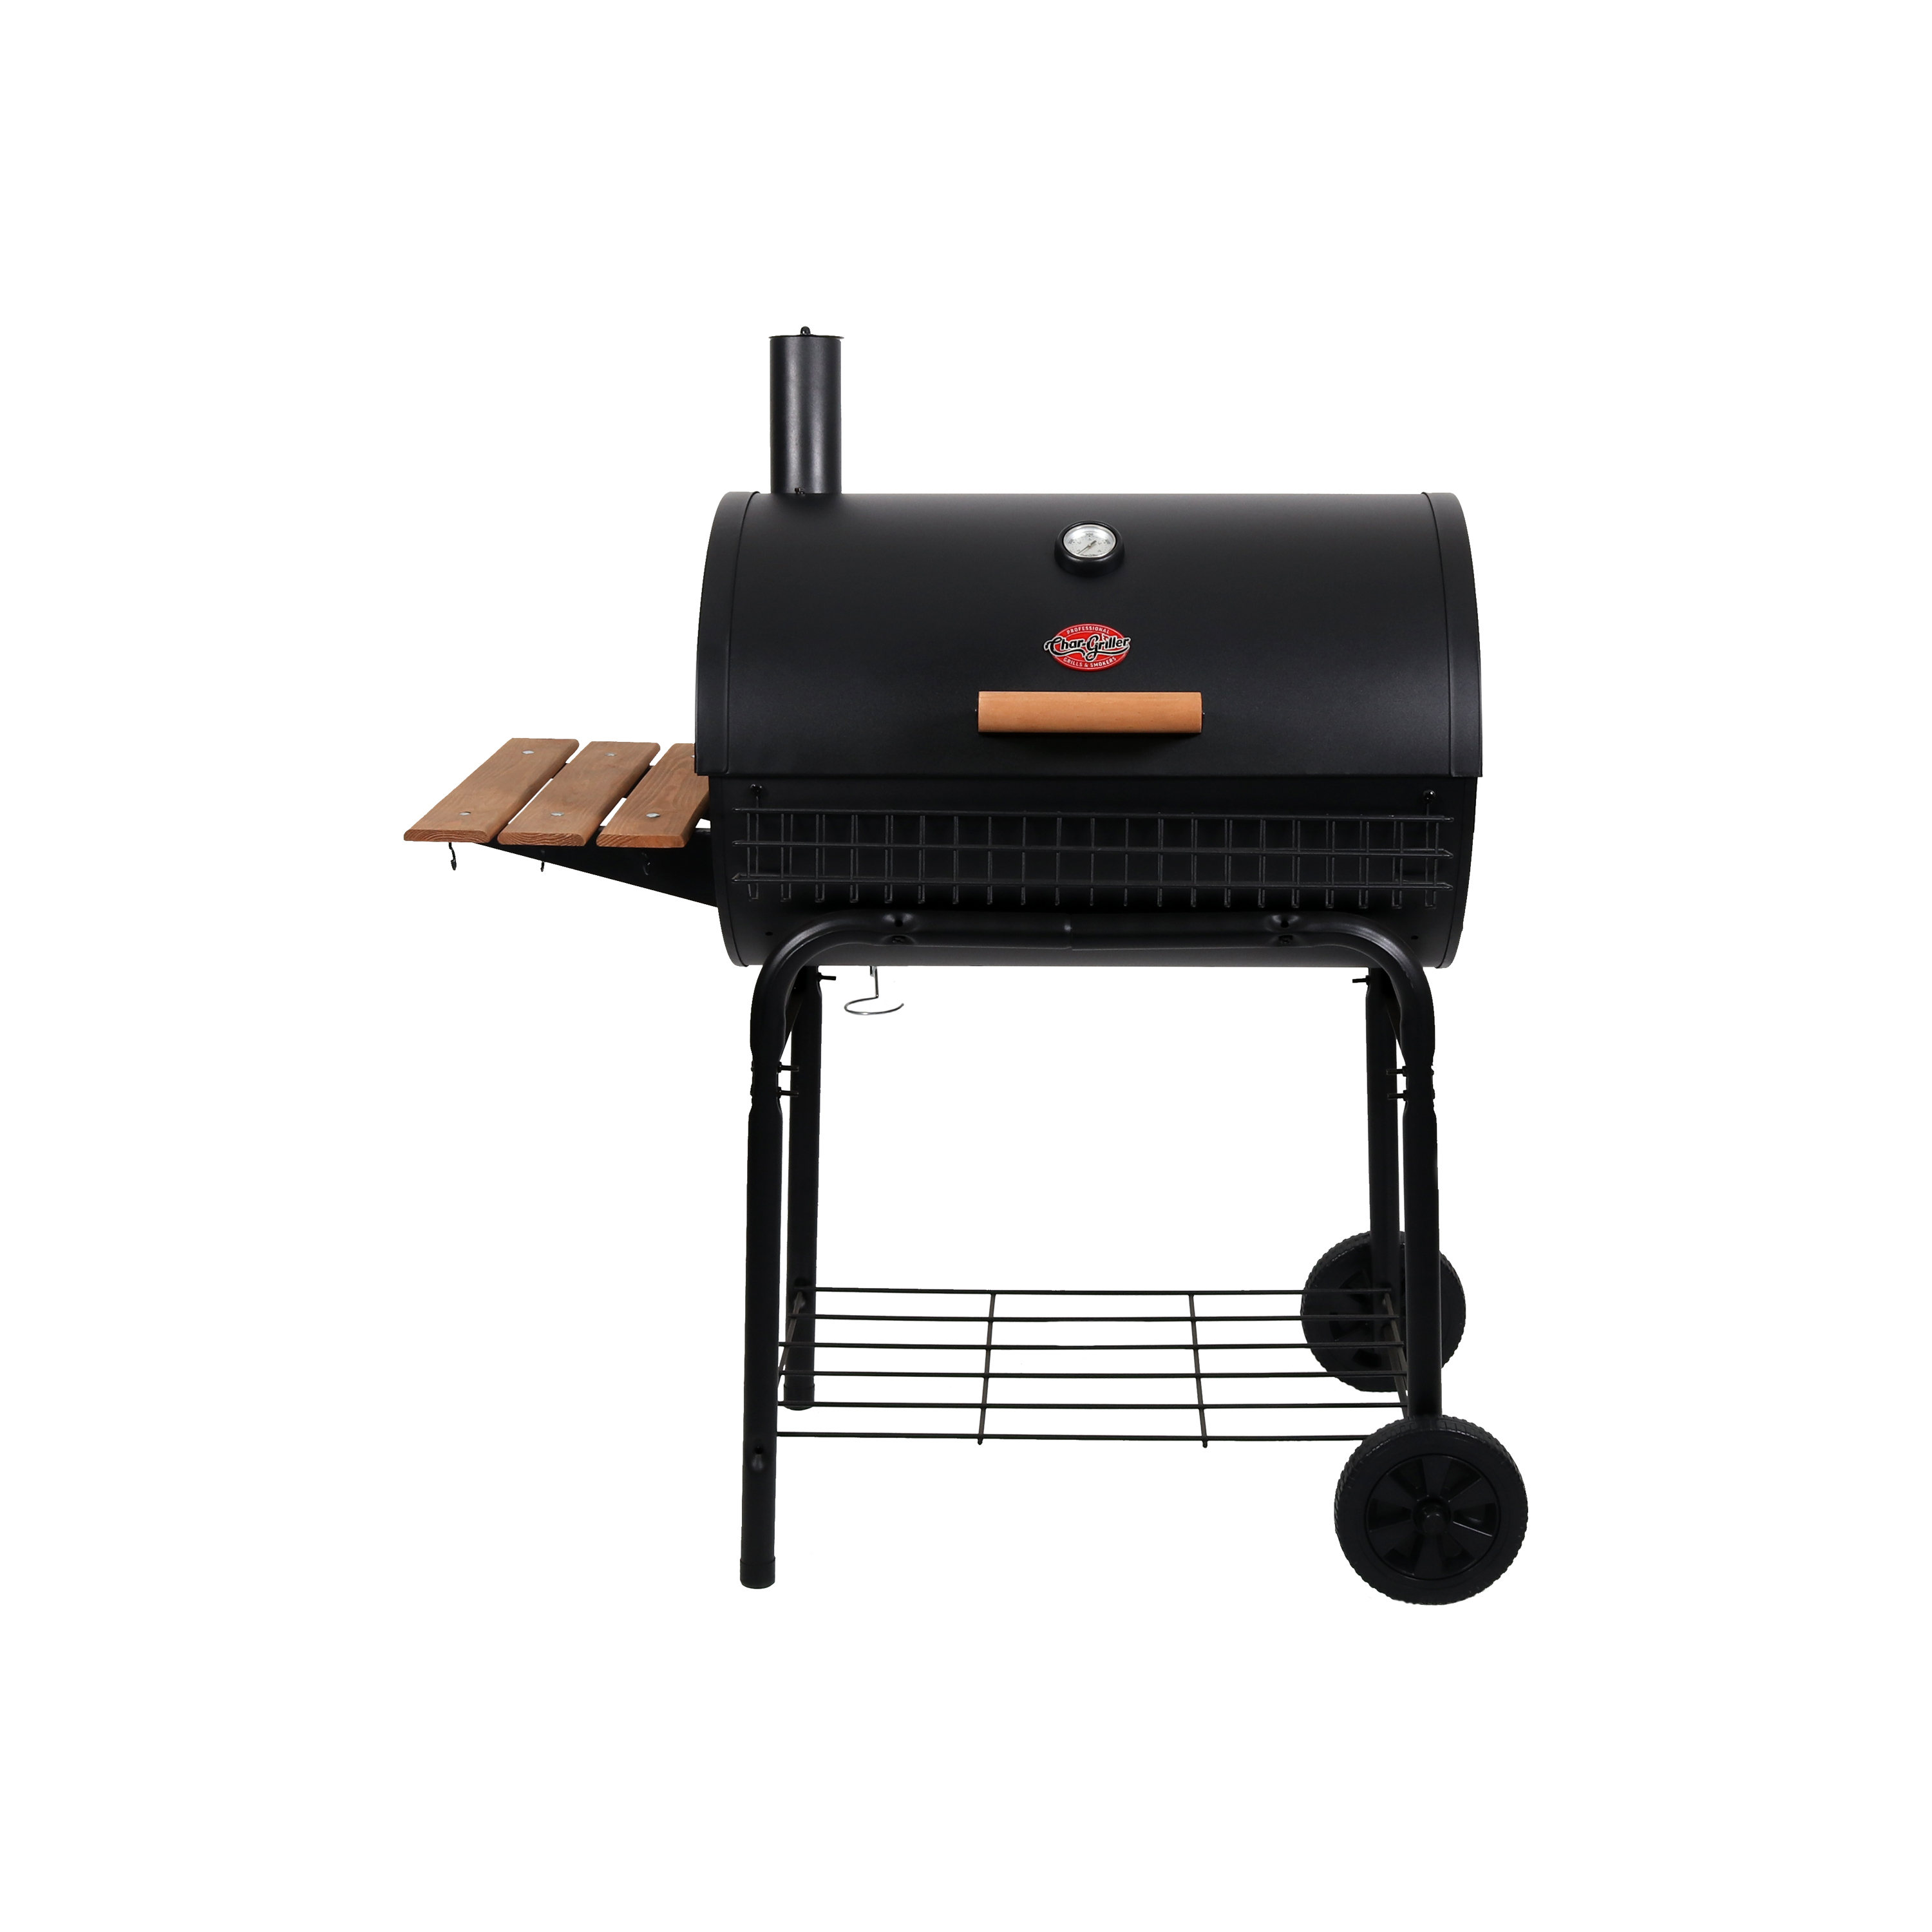 "Char-Griller Deluxe 29"" Charcoal Grill, Black, E2828 by Char-Griller"